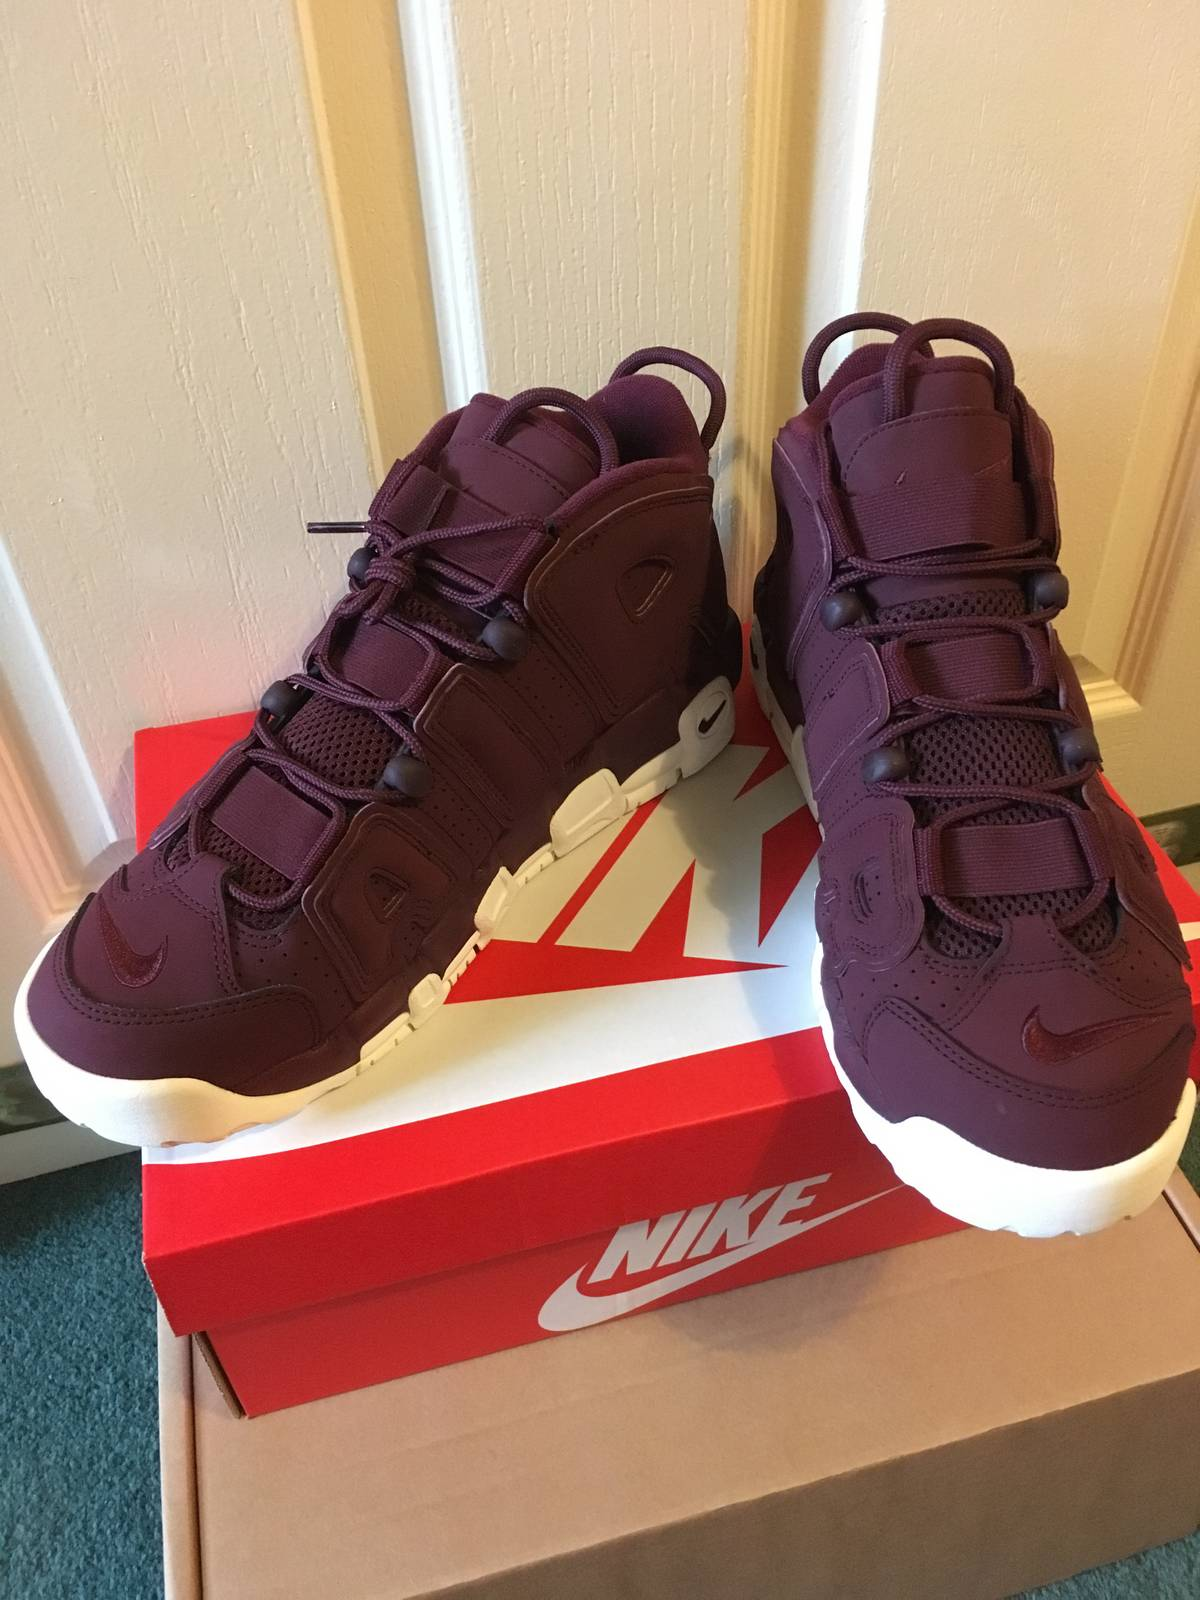 38f889041c7b5d ... release date nike air more uptempo 96 qs size 9 night maroon air max  81f15 2c35b